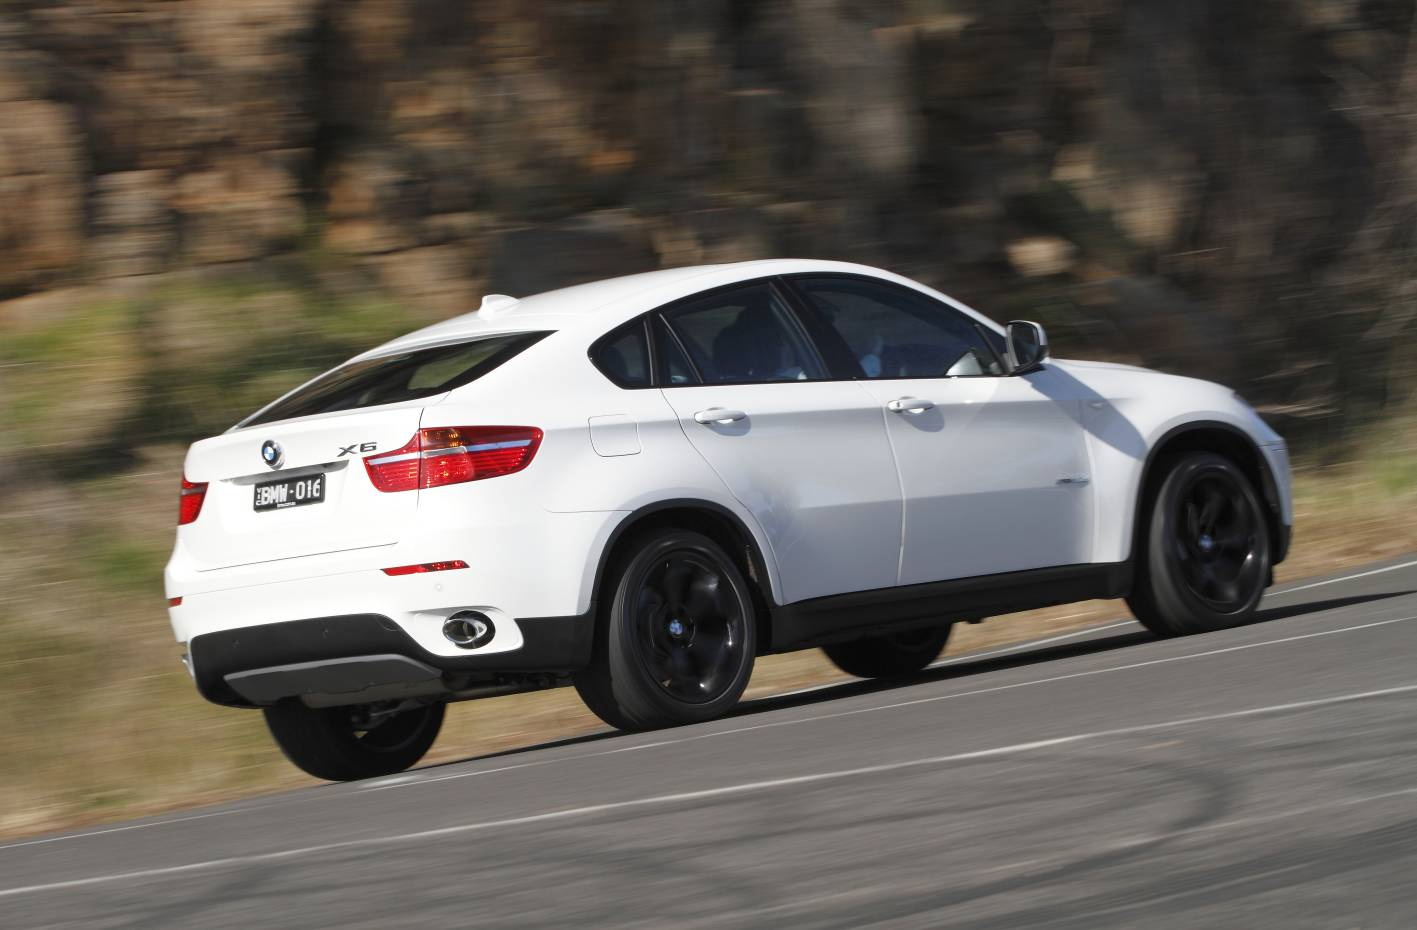 BMW X6 xDrive30d side view in white color car images